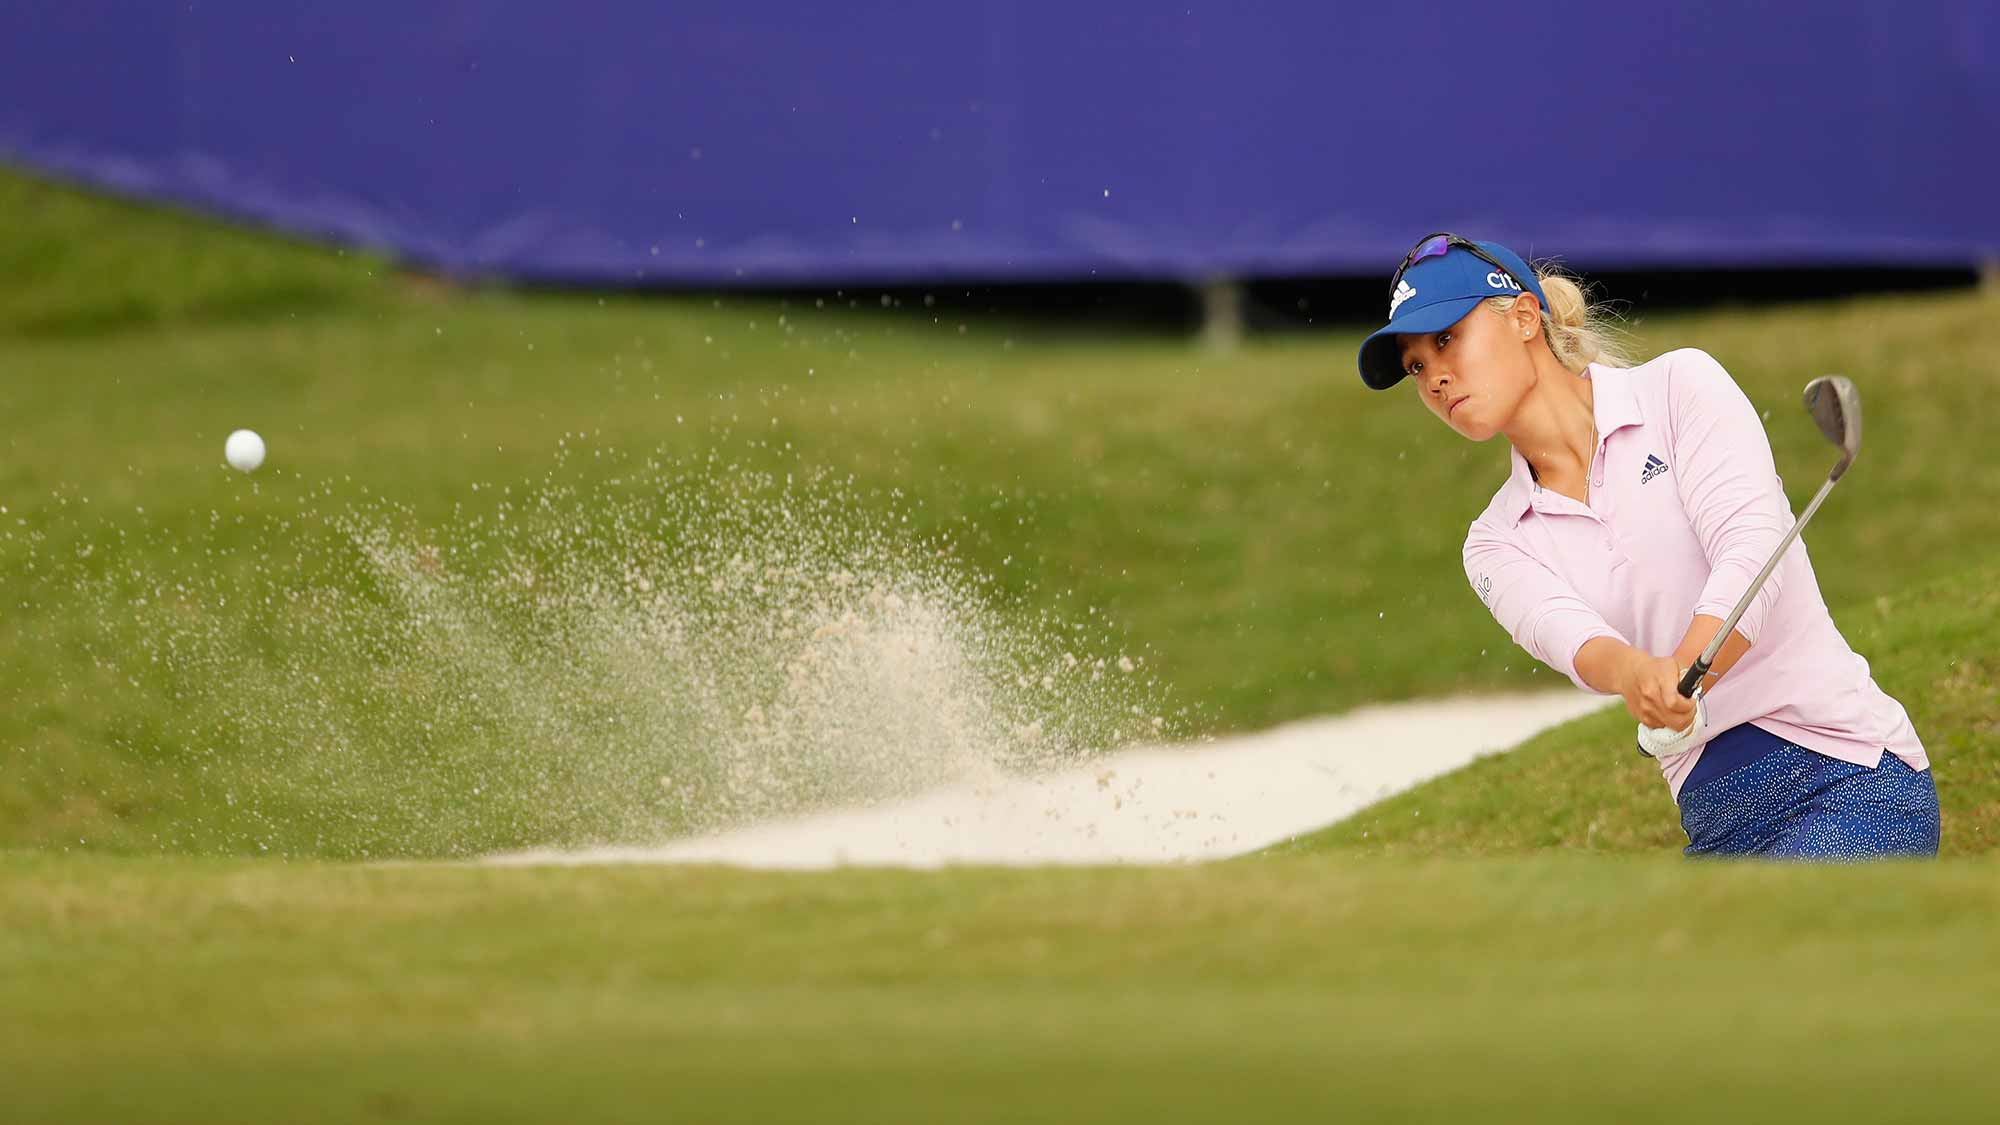 Danielle Kang of United States in action at the eighteen hole during the first round of the Swinging Skirts LPGA Taiwan Championship at Ta Shee Golf & Country Club on October 25, 2018 in Taoyuan, Chinese Taipei